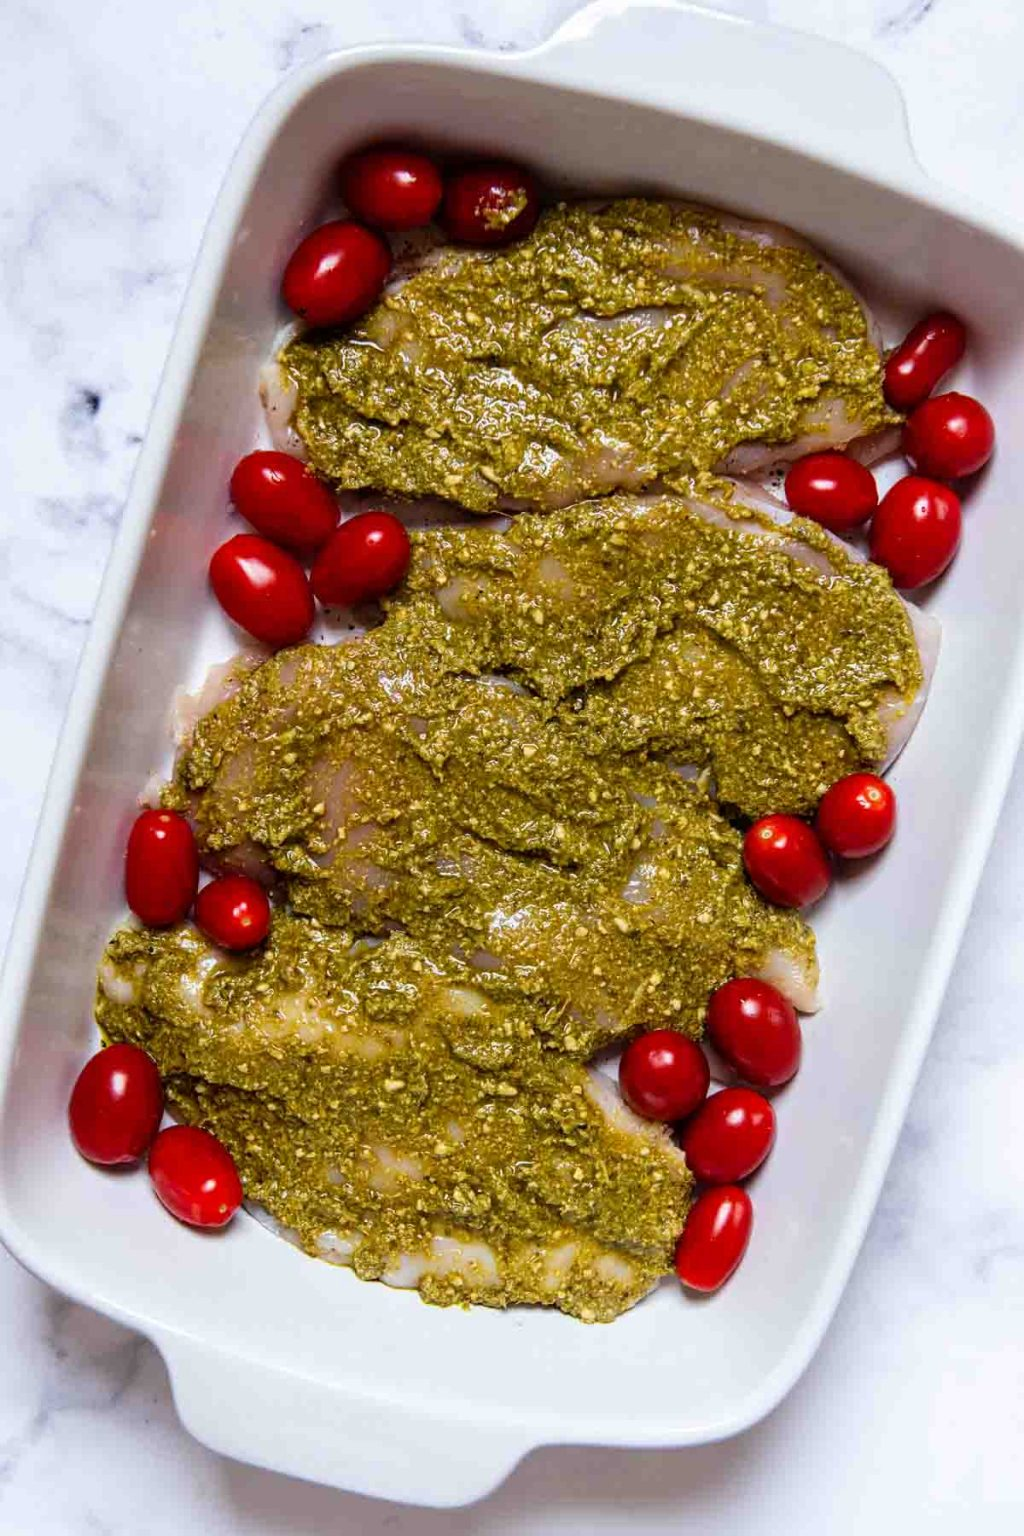 image showing pesto covered chicken with tomatoes around before it is baked